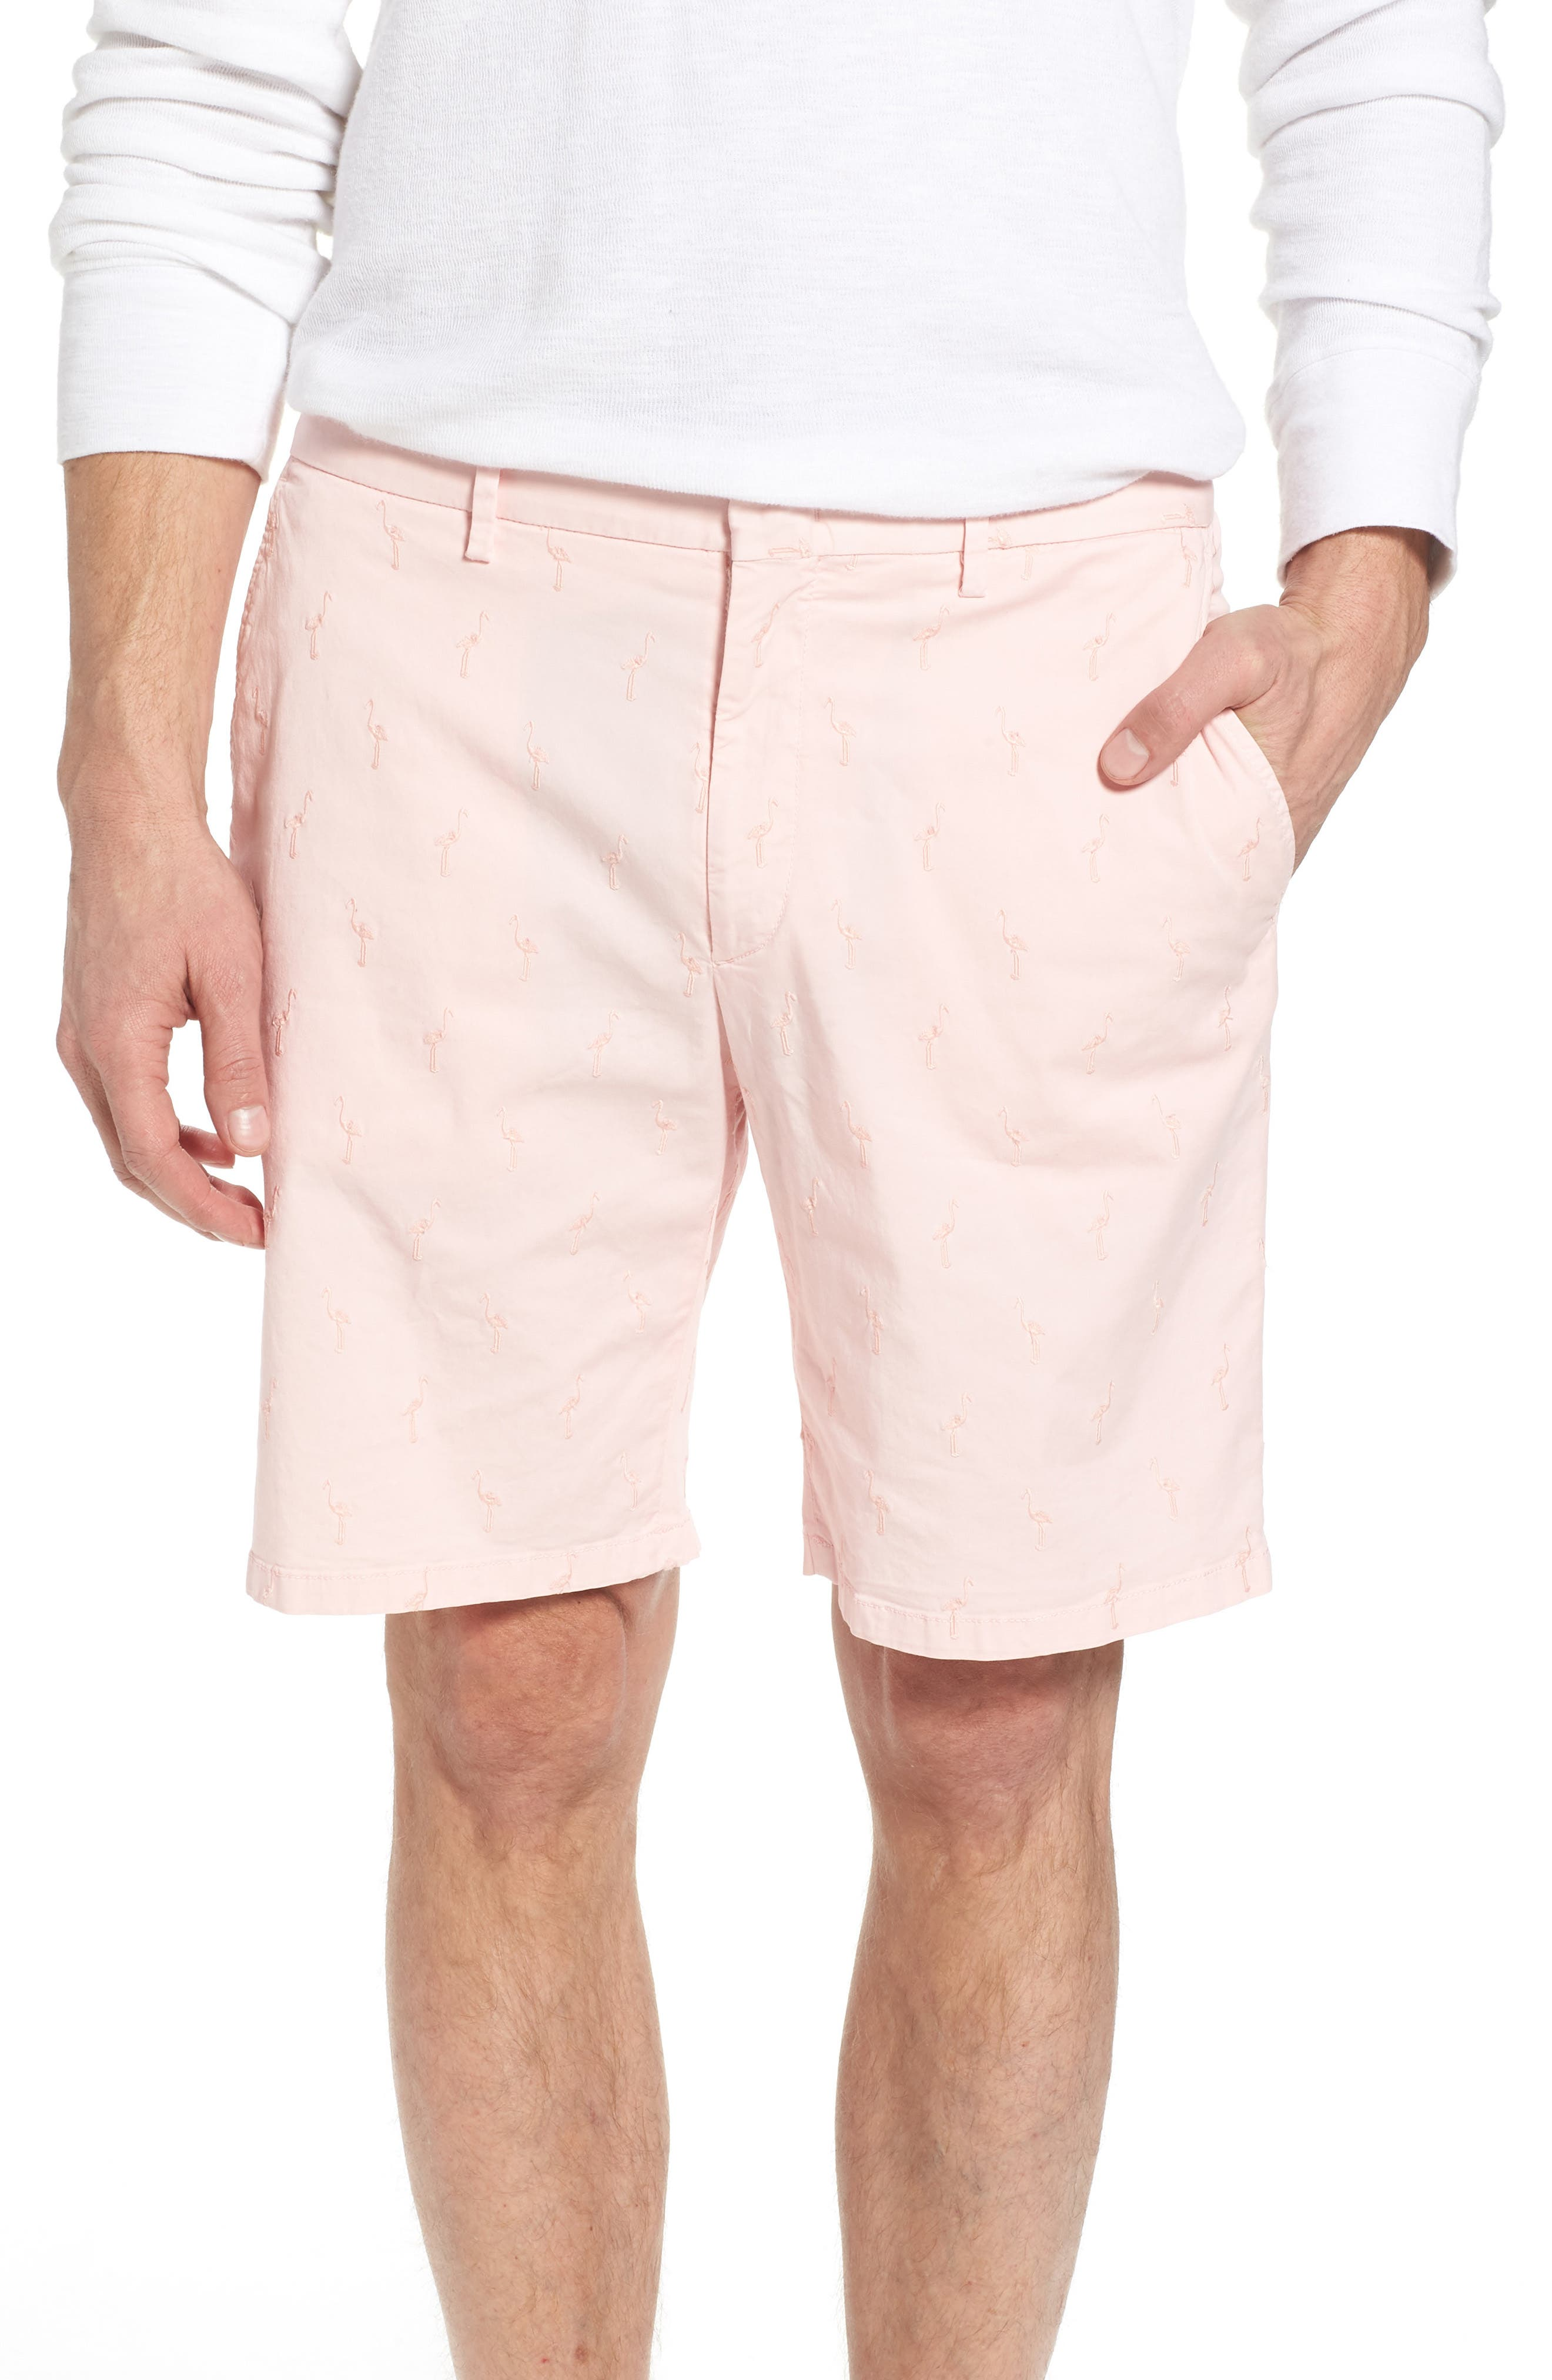 Embroidered Twill Shorts,                         Main,                         color, Pink Sand